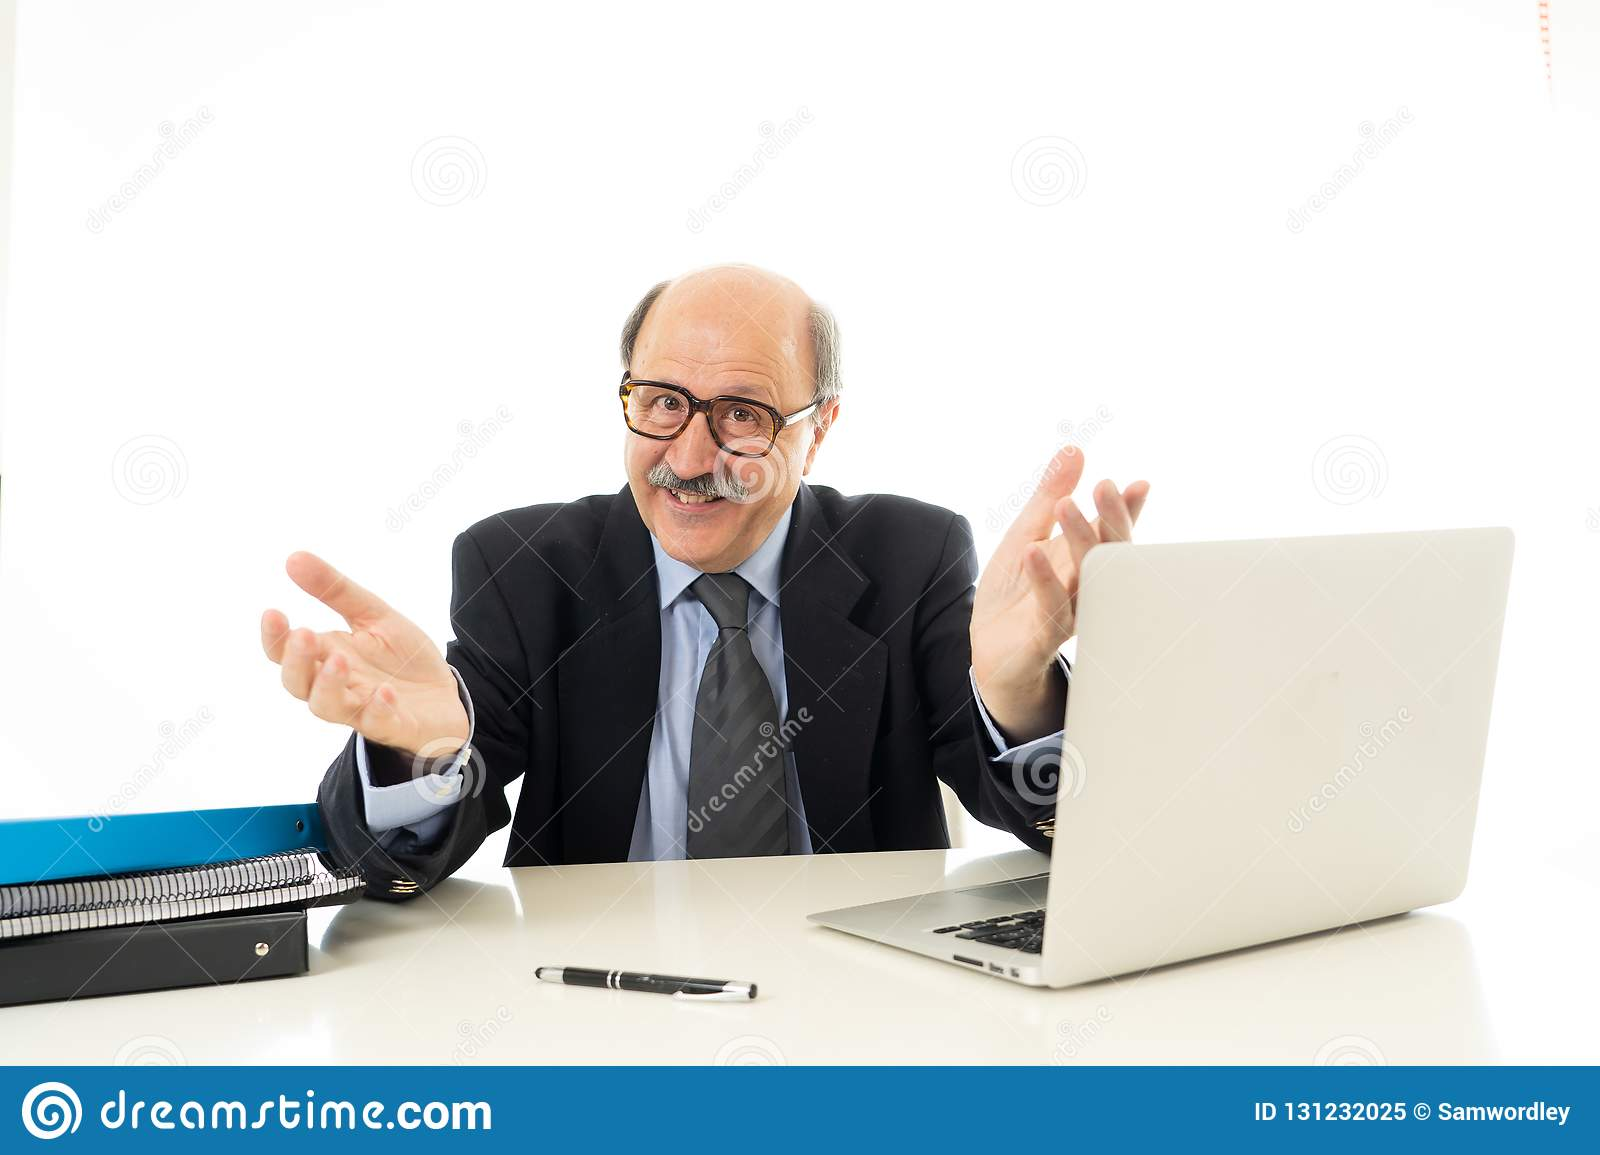 Pleased mature business man in his 60s working on laptop confident of success